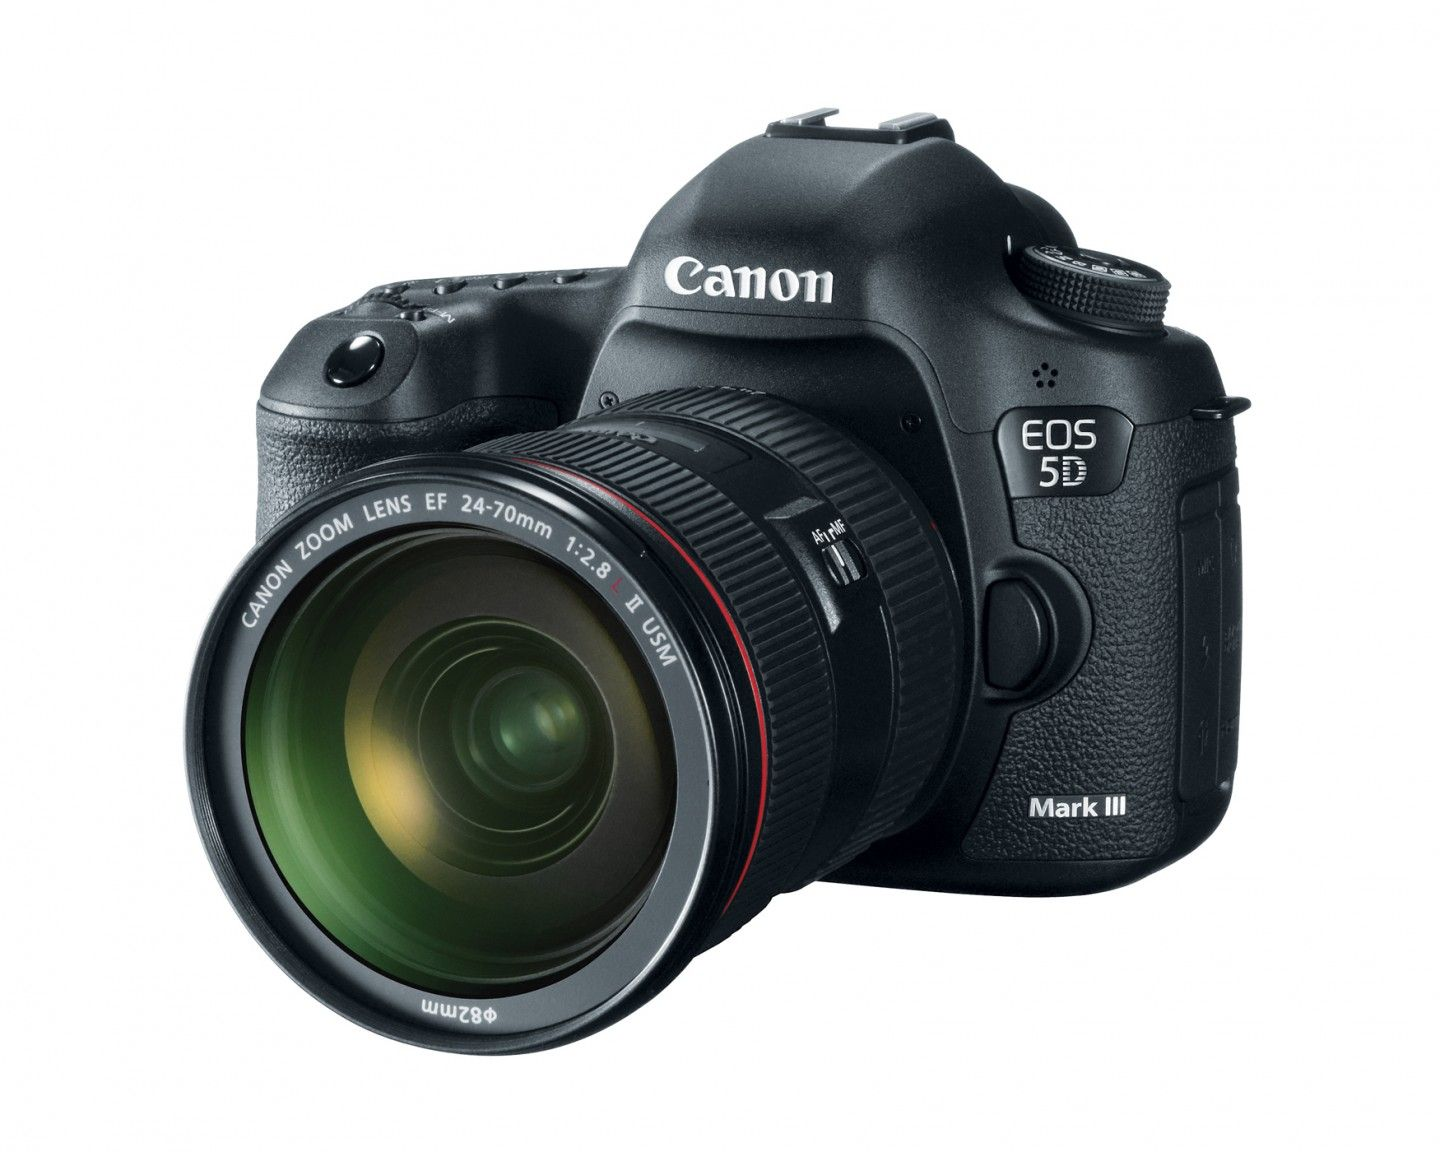 Canon 5D Mark III with 24-70mm 2.8 USM Mark II